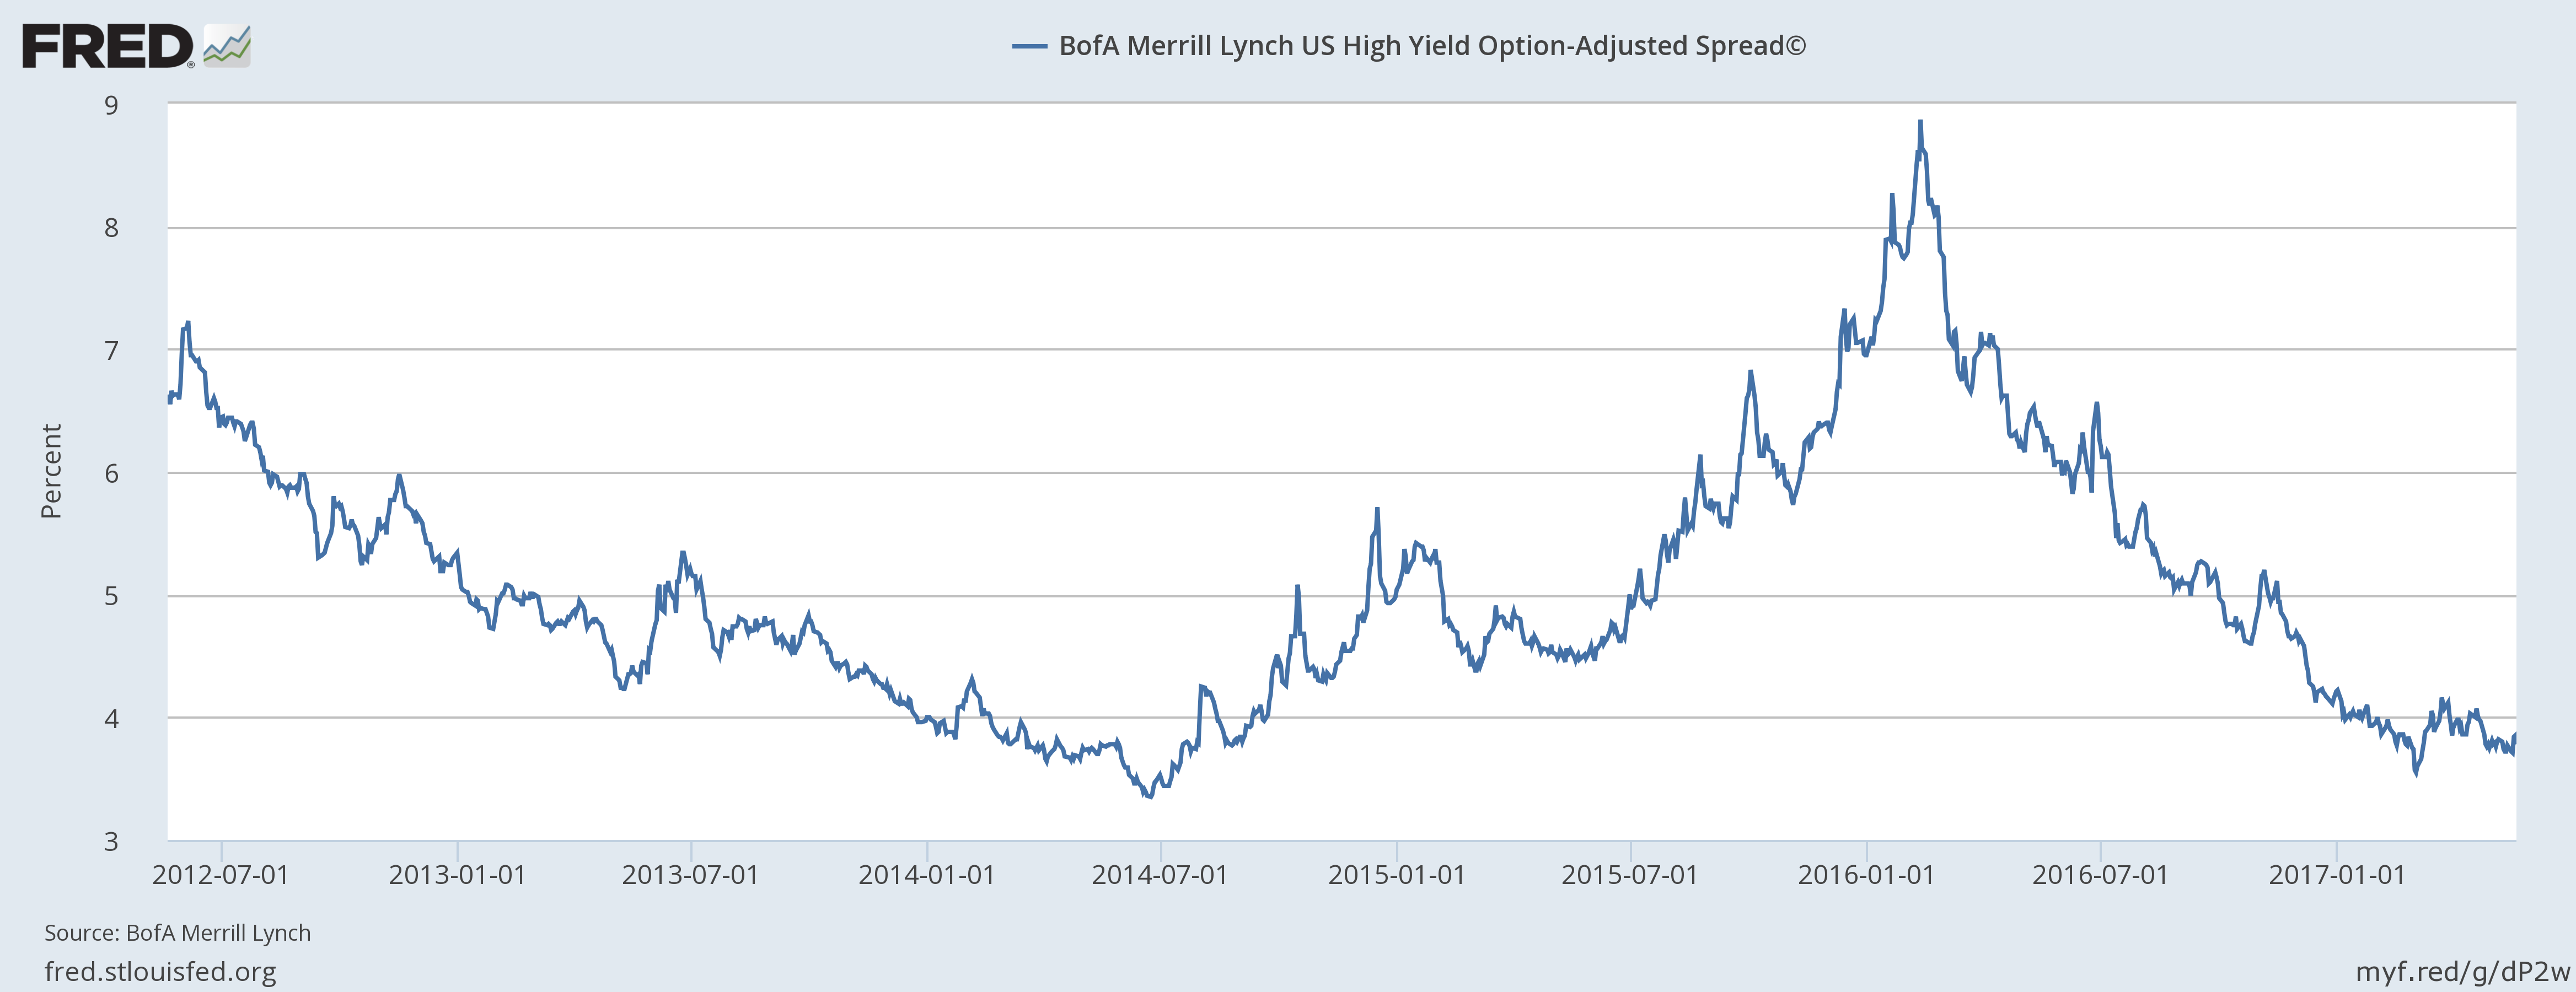 BofA Merrill Lynch US High Yield Option Adjusted Spread, July 2012 - May 2017